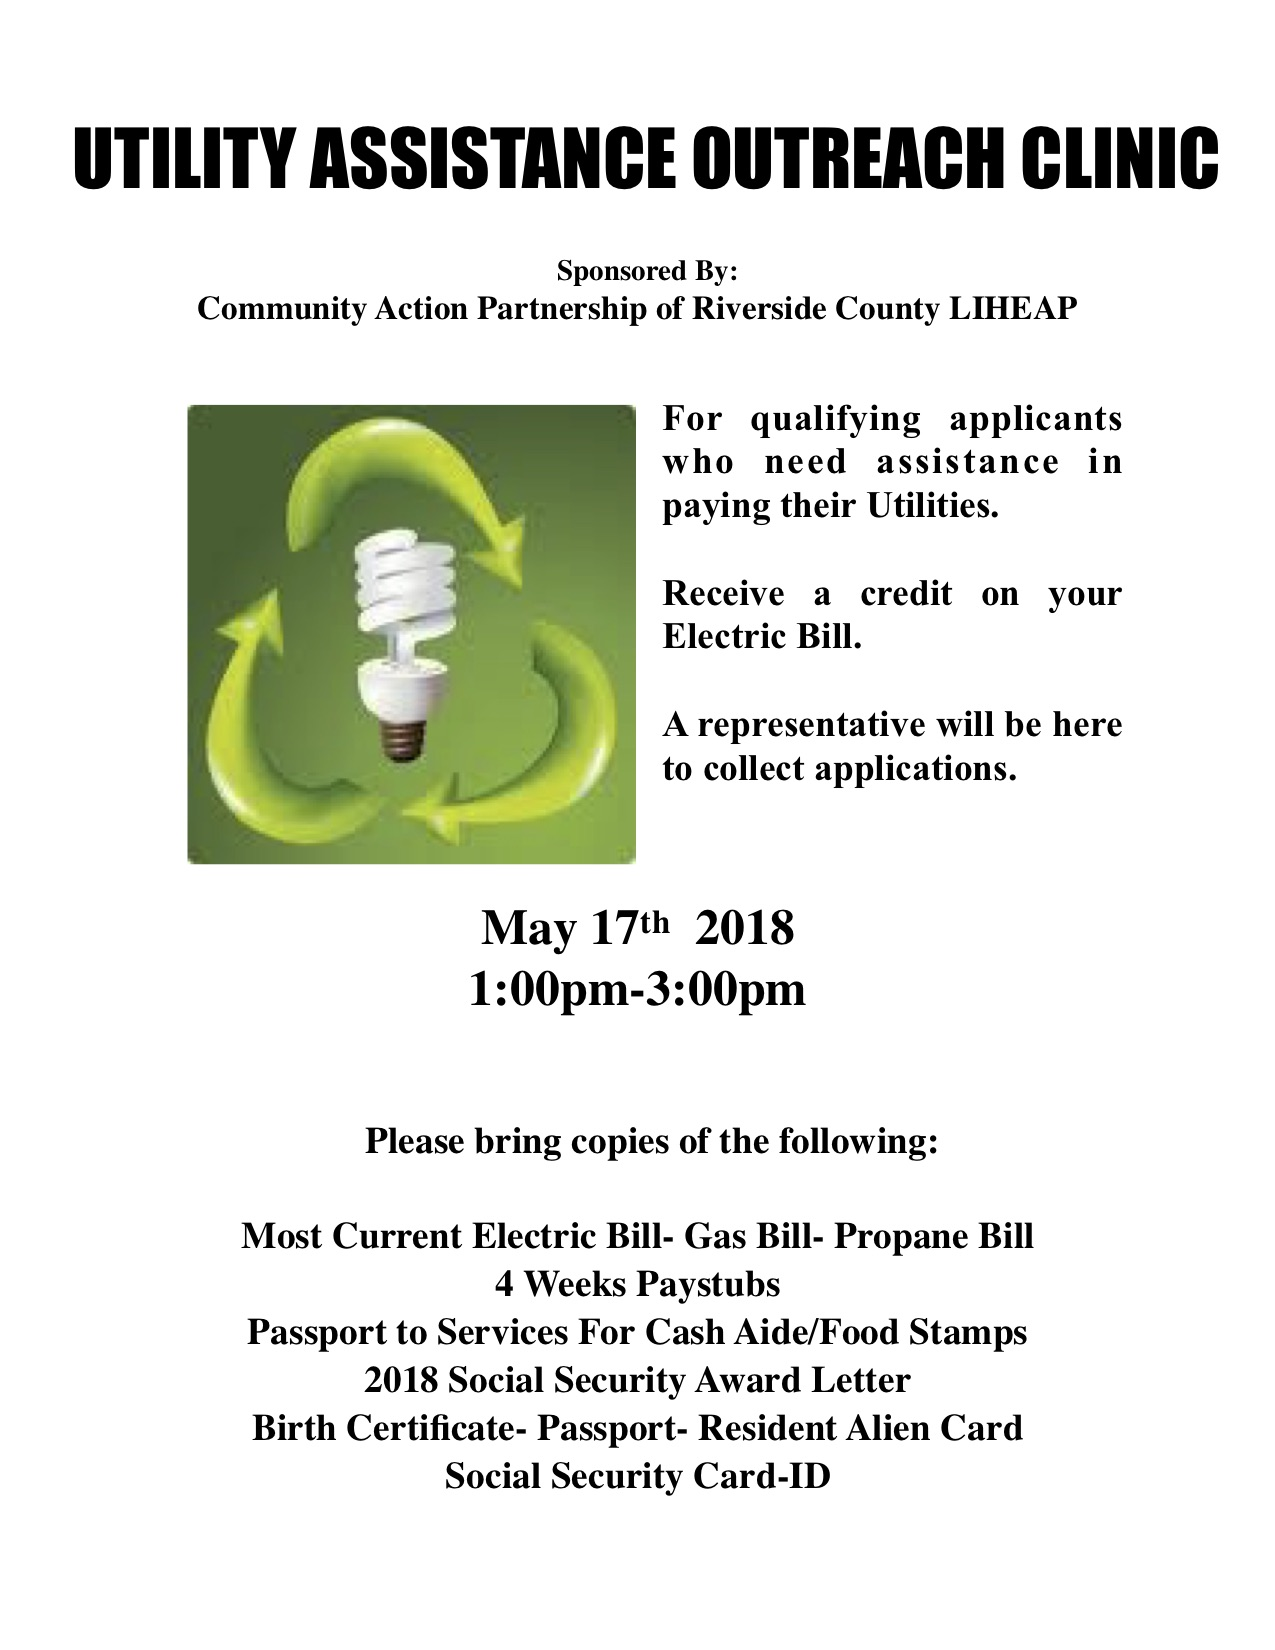 Utility Assistance Outreach Clinic May 17 2018 Forest Folk